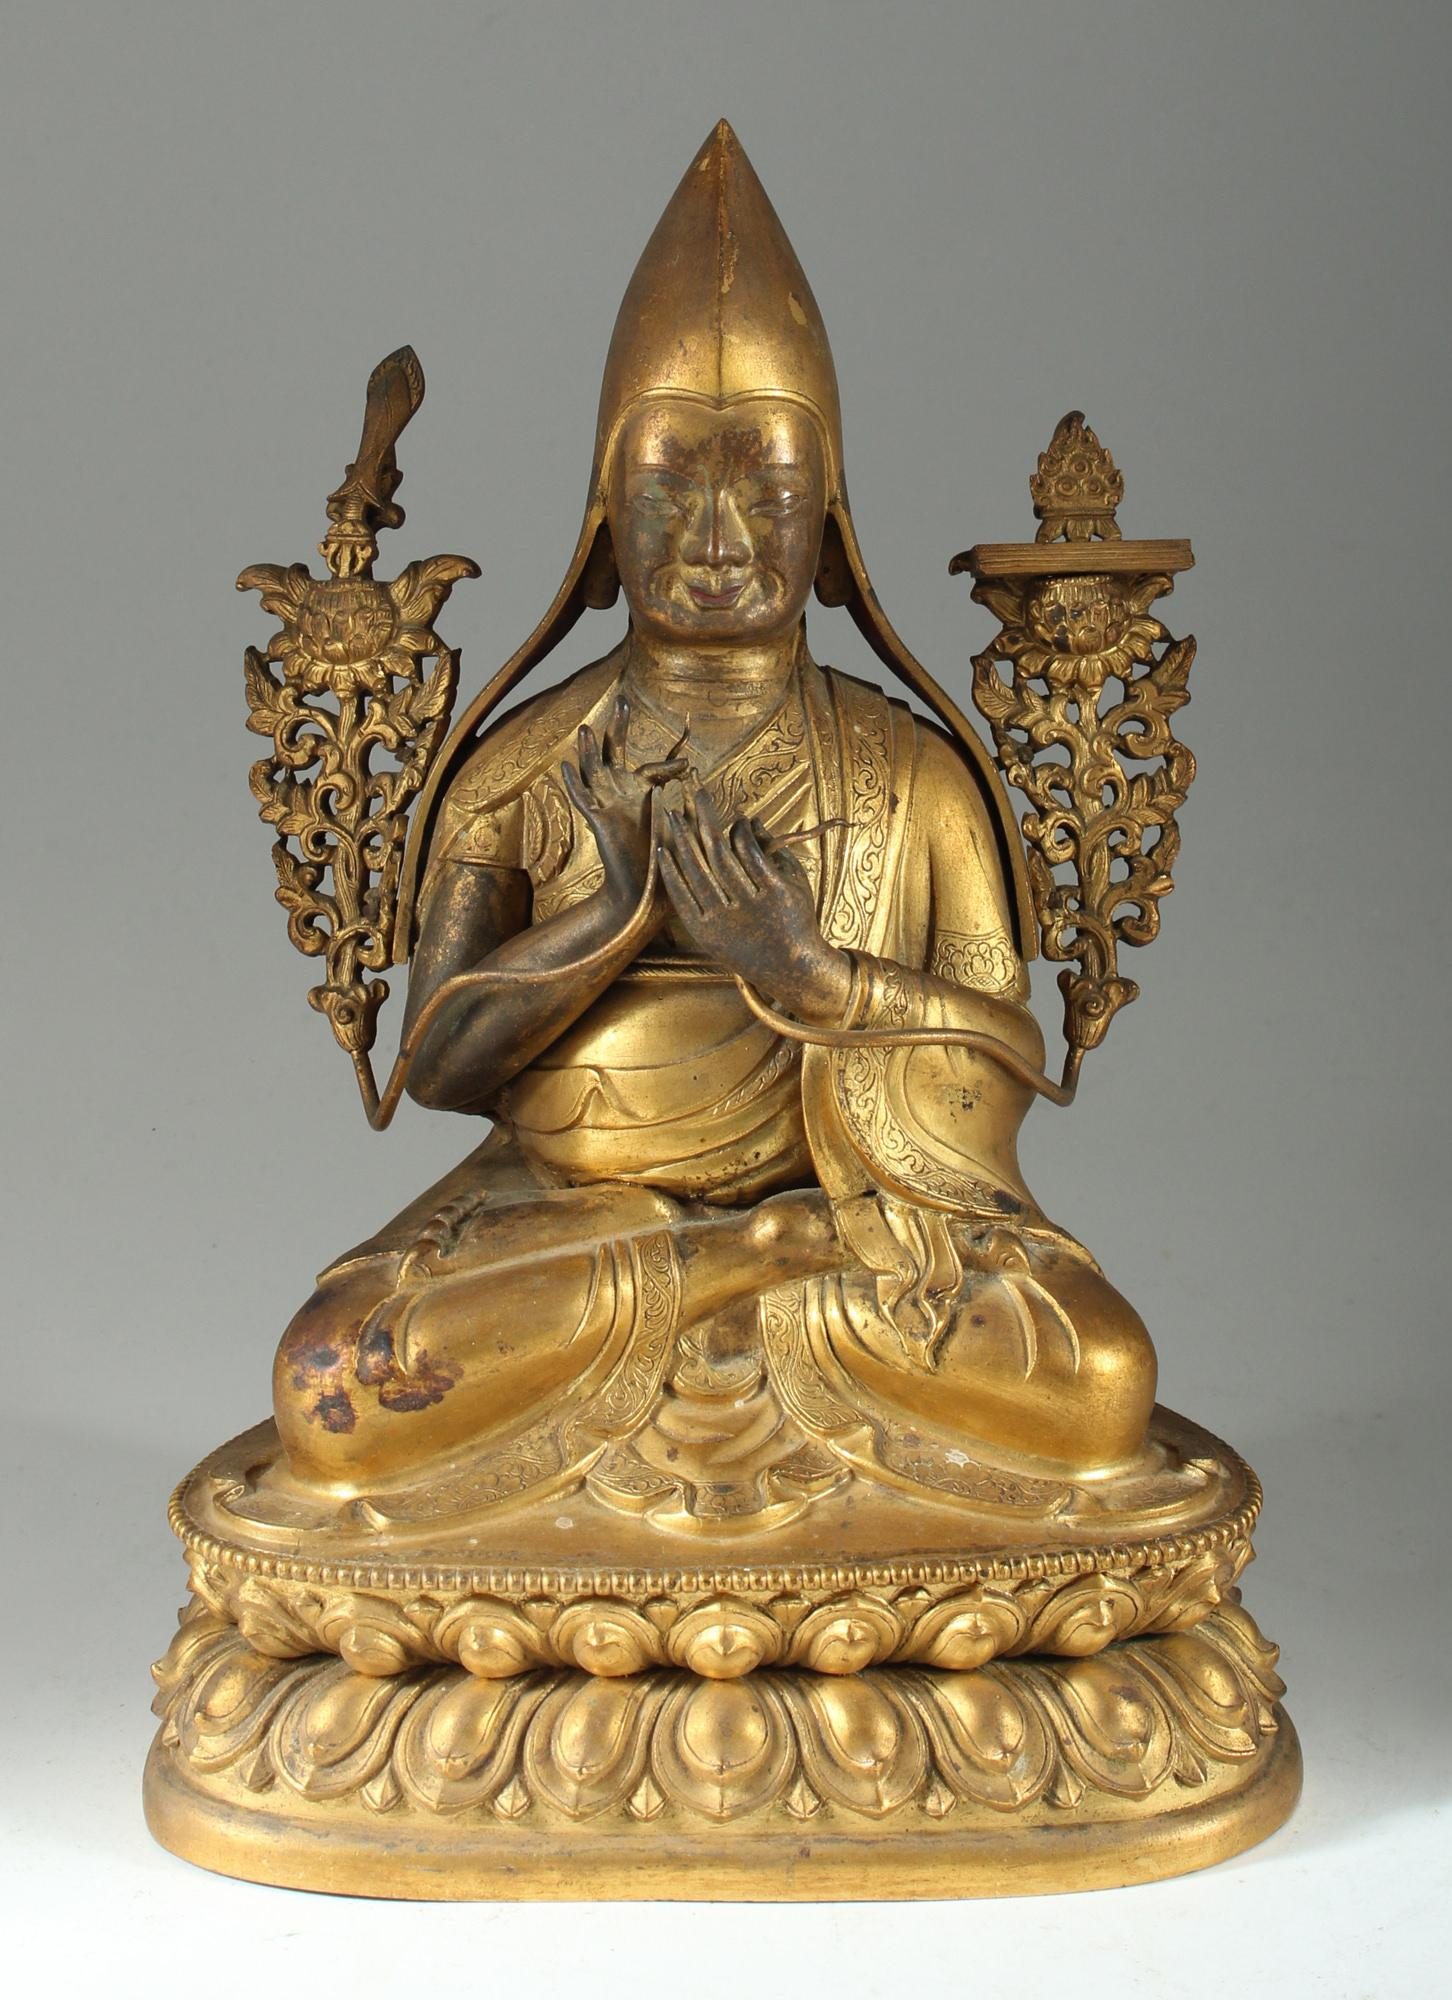 Tibetan Gilt Bronze Figure of Tsongkhapa Asian Art Manjushri Monasticism Gelug, New York Auction House, Houston Auction, Dallas Auction, San Antonio Auction, Chinese Auction, 中国艺术拍卖, 西藏艺术, 宗喀巴, 坐像,  铜鎏佛像, 海外捡漏